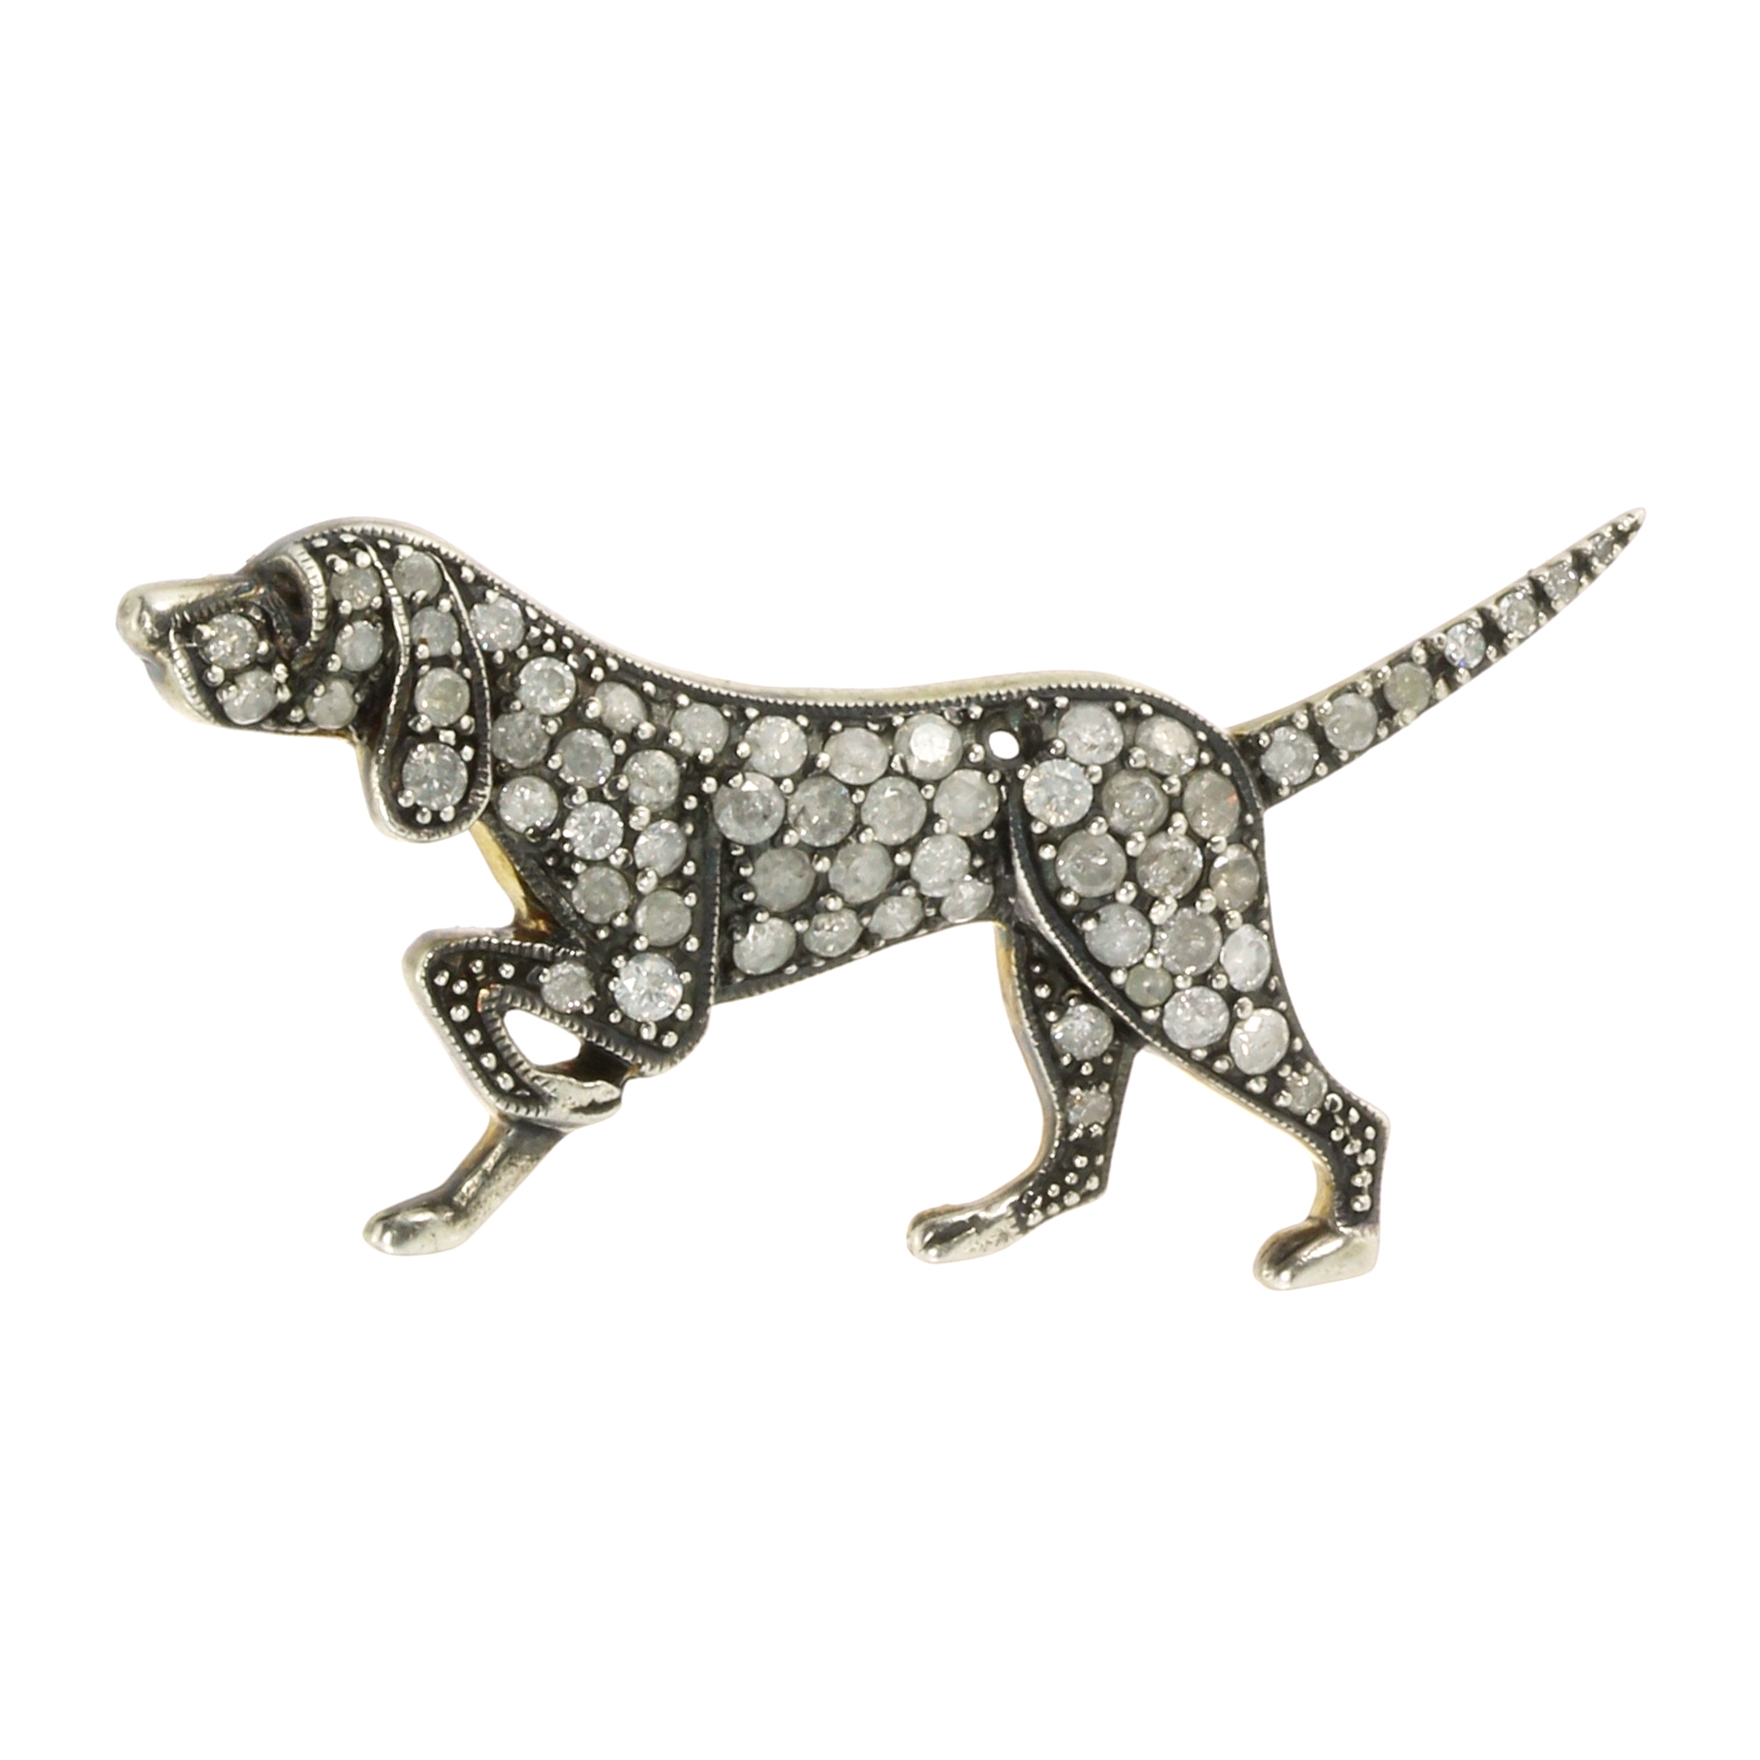 Los 52 - A DIAMOND DOG BROOCH modeled as a dog, walking with its tail and paw raised, jewelled all over the